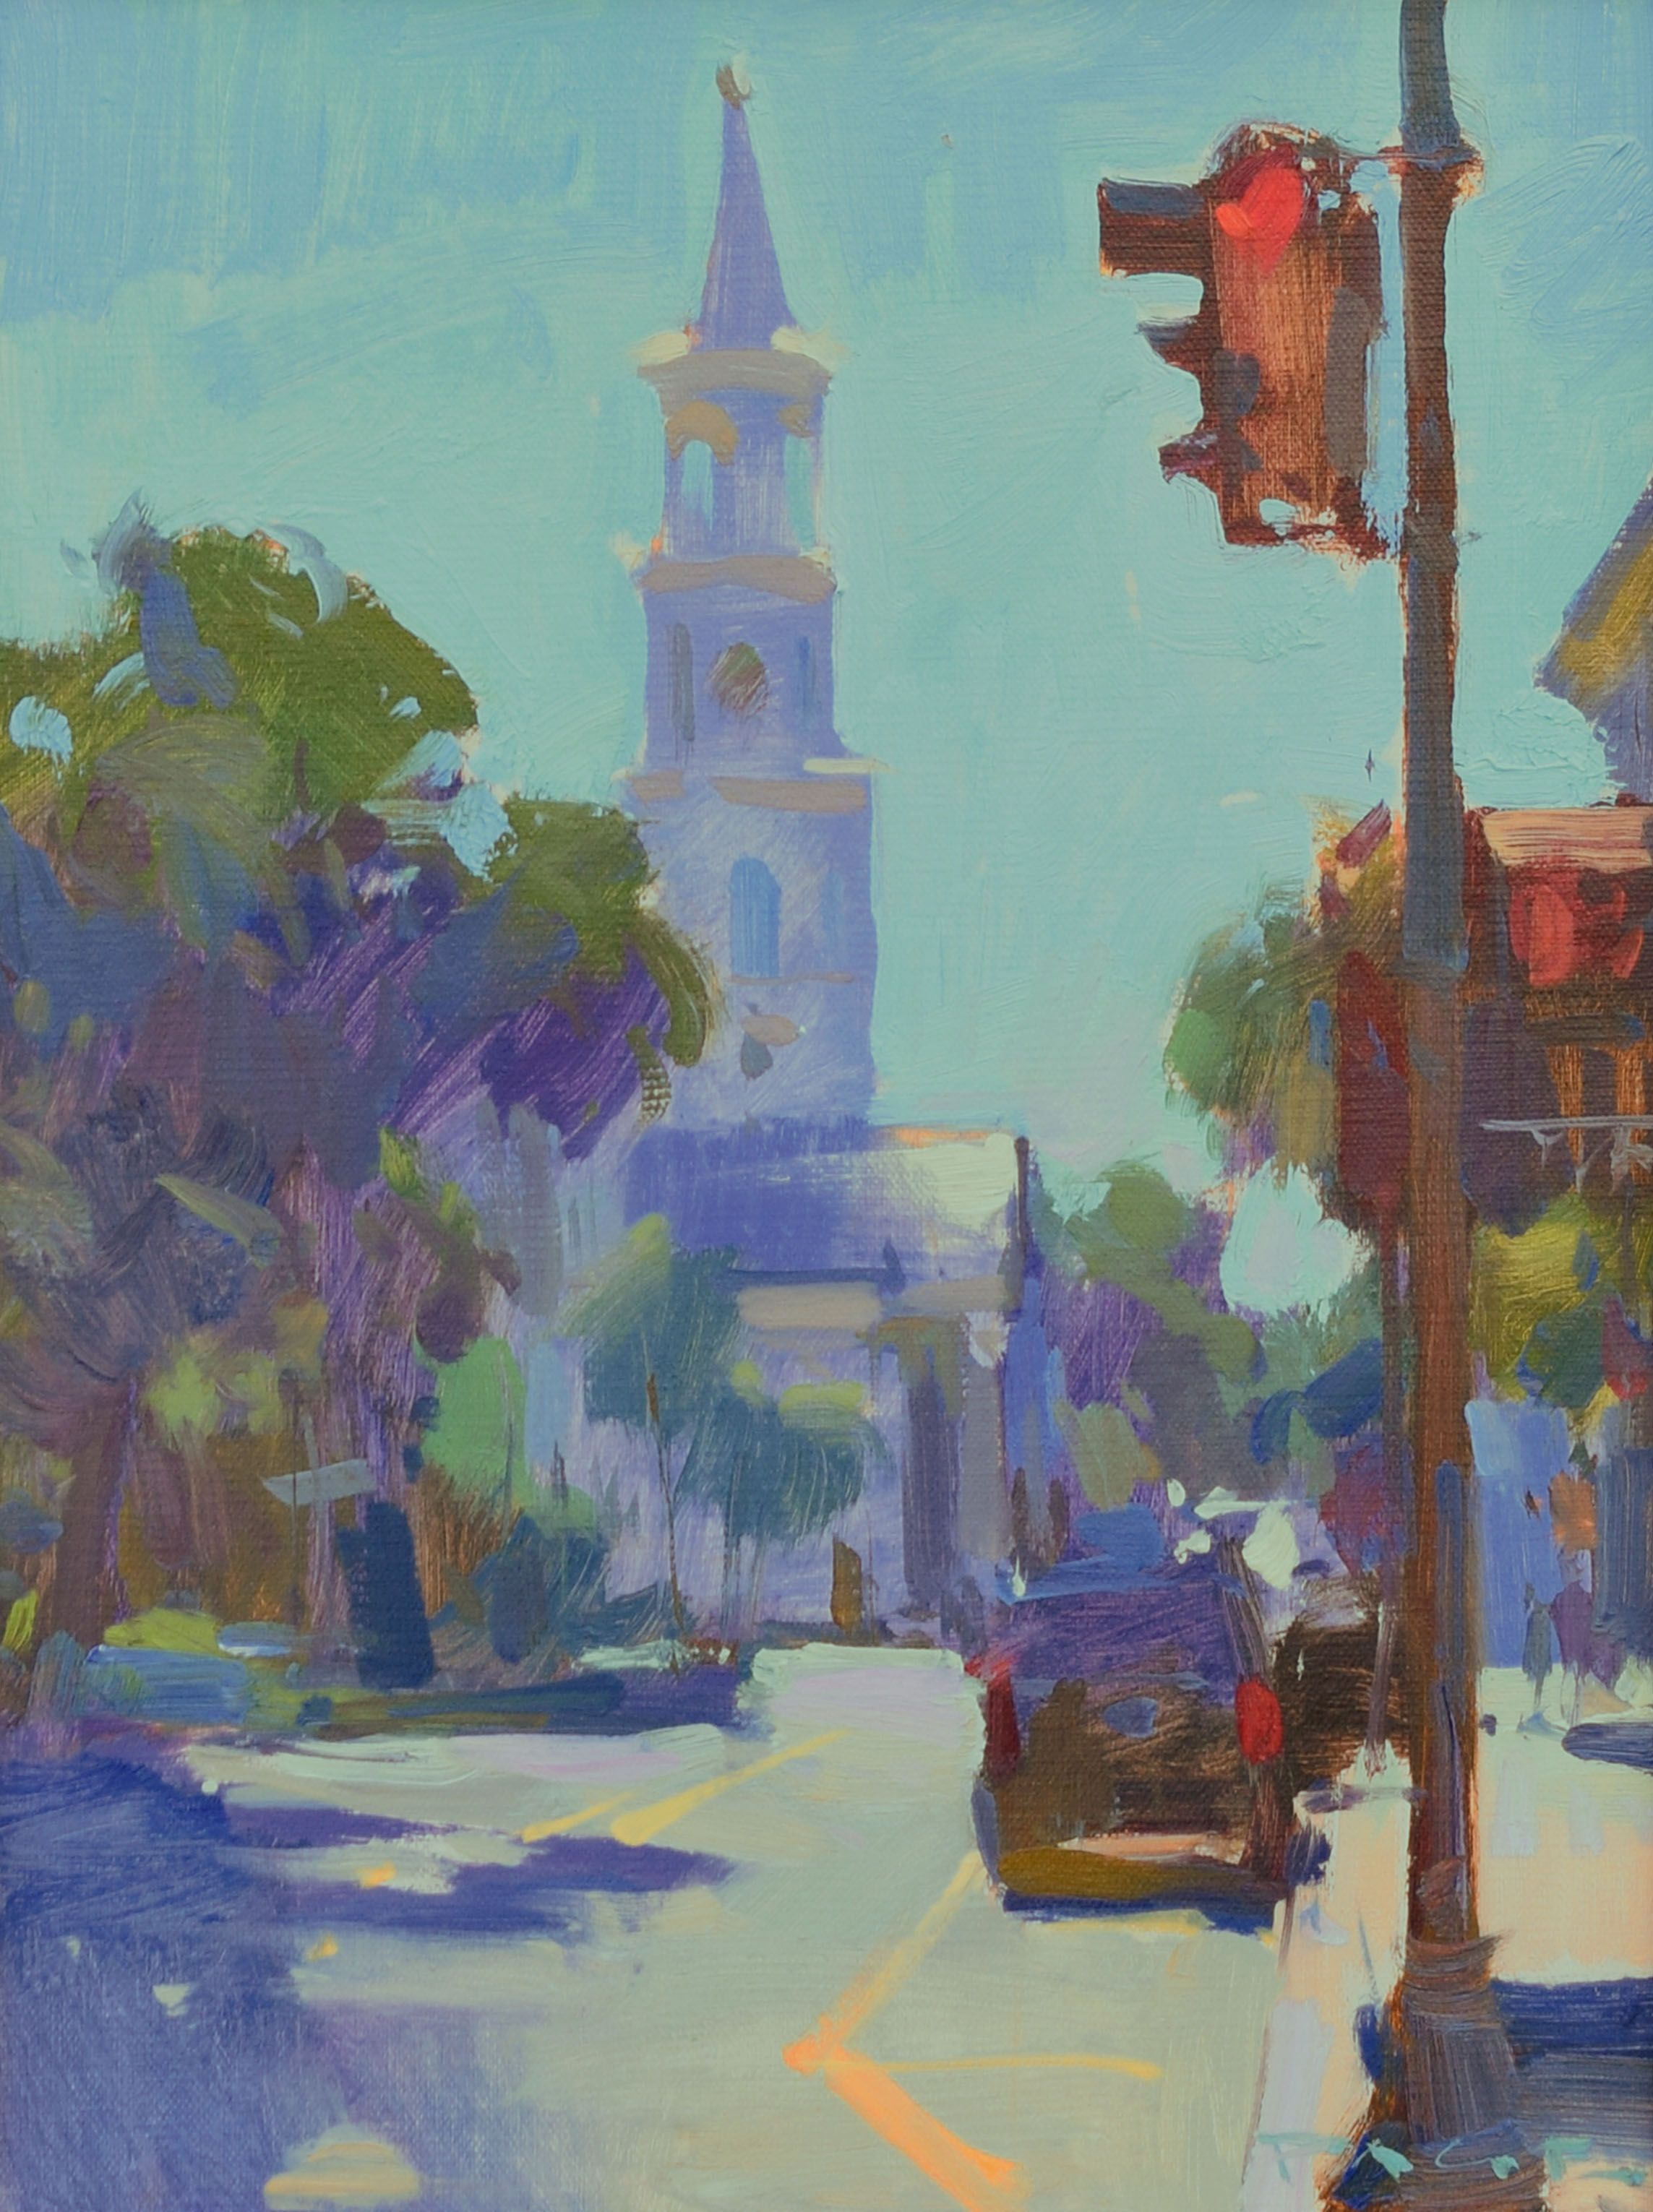 Colin page morning on meeting artwork anglin smith